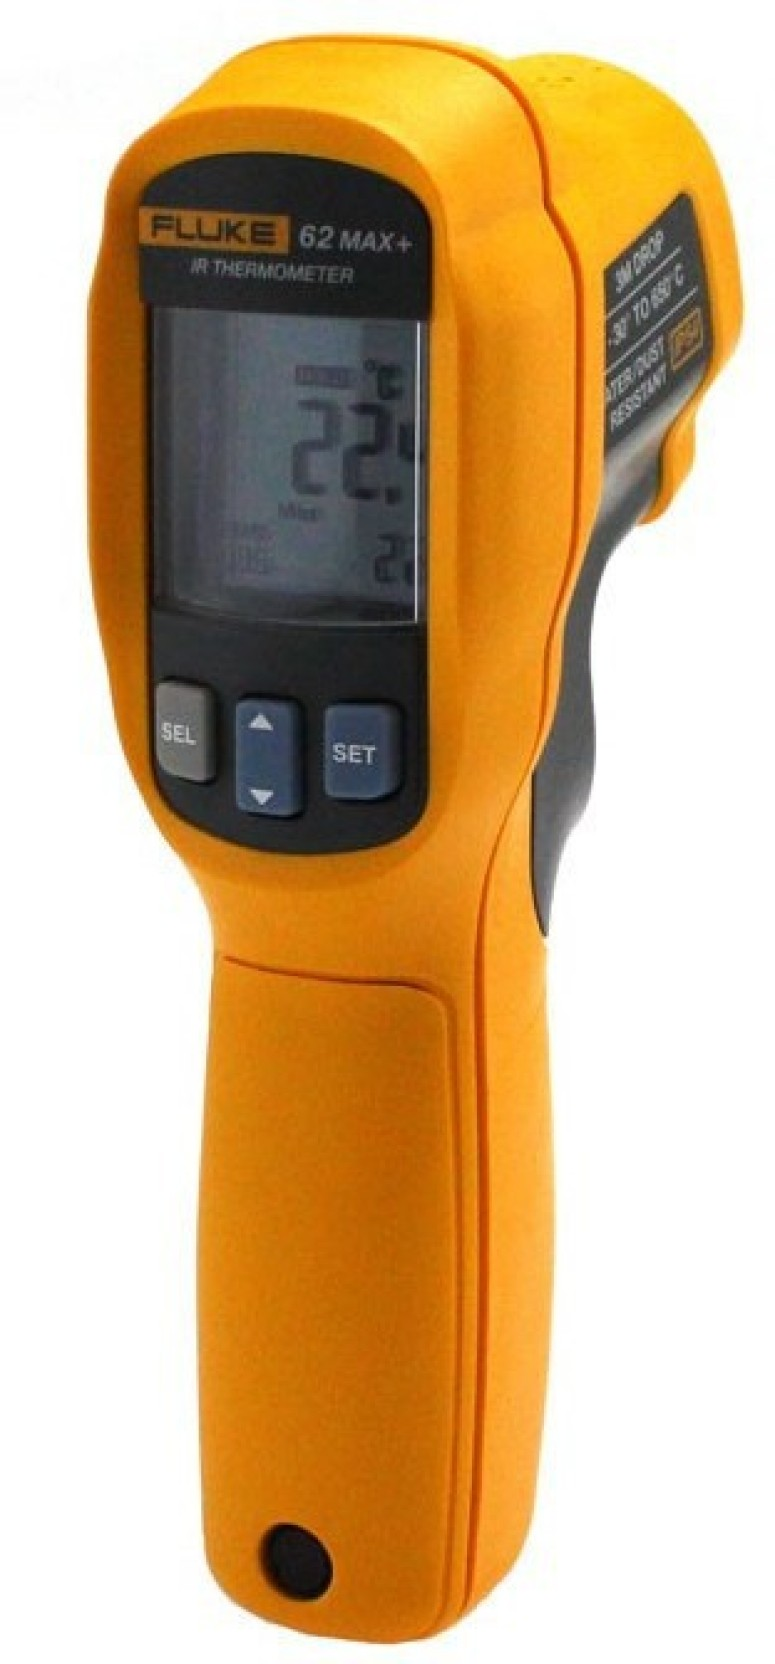 Fluke 62 Max plus Infrared Thermometer Digital Multimeter (Yellow 2000  Counts) 688d8803043fa